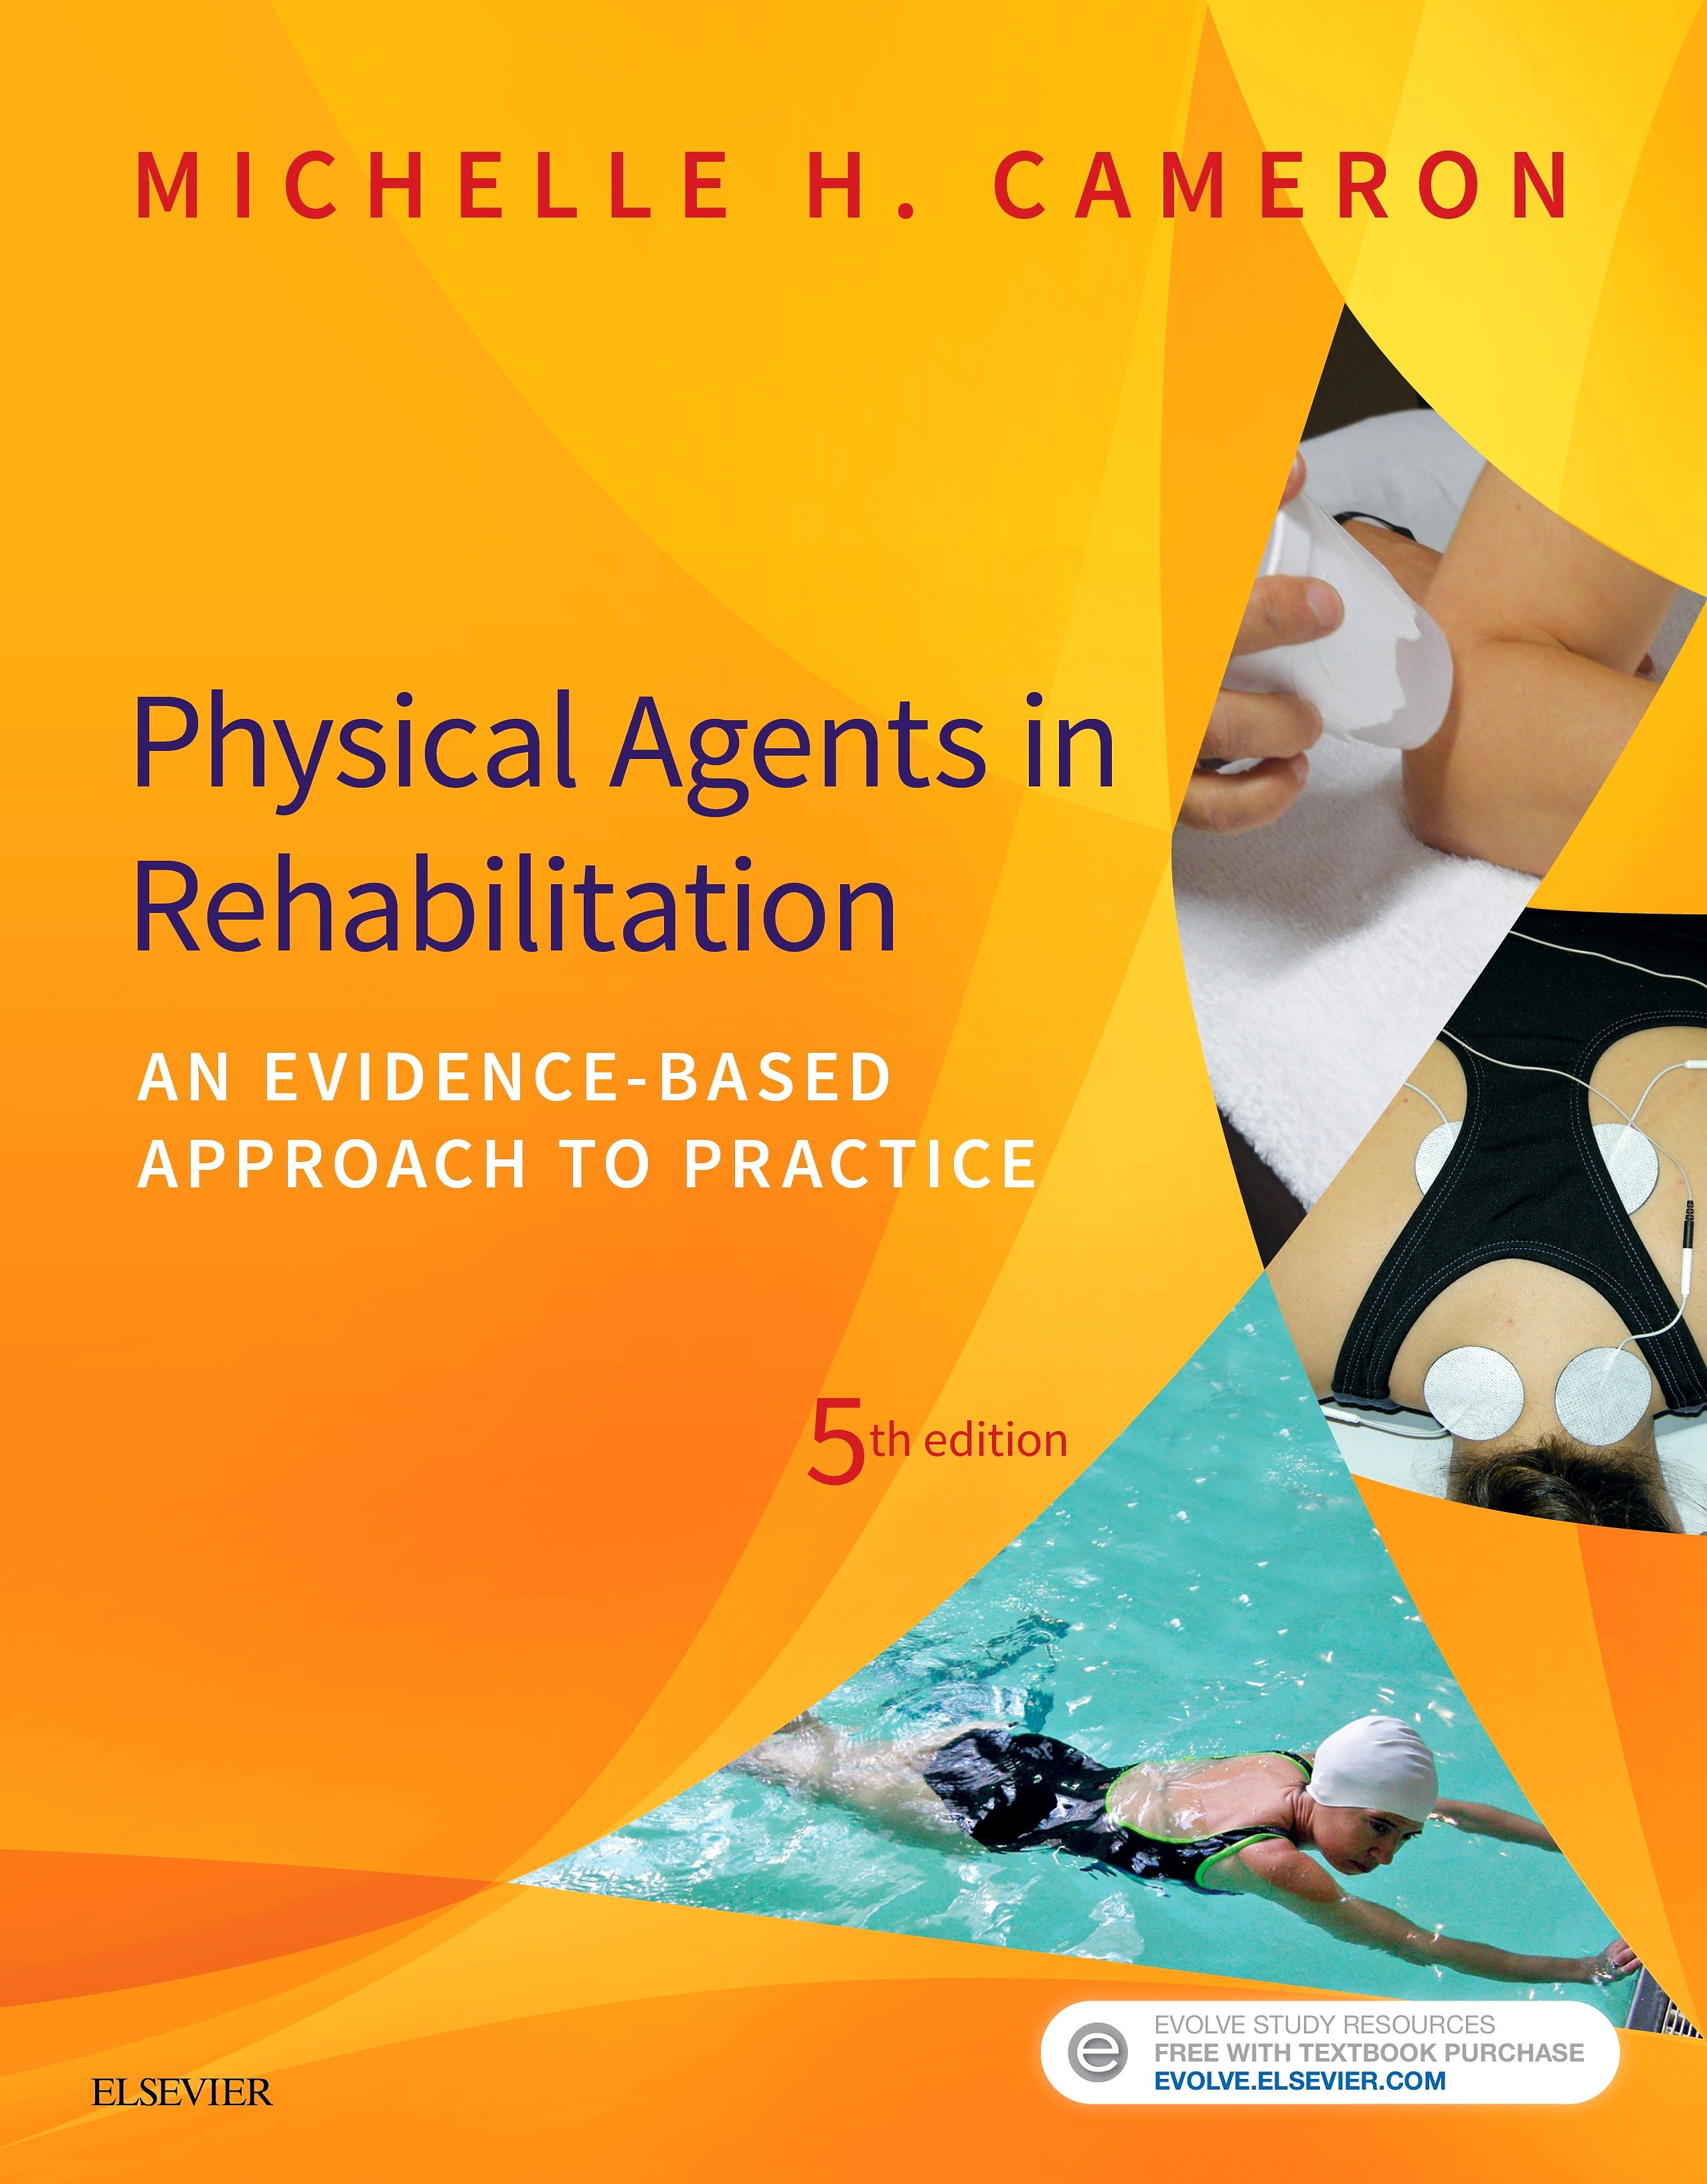 Evolve Resources for Physical Agents in Rehabilitation, 5th Edition